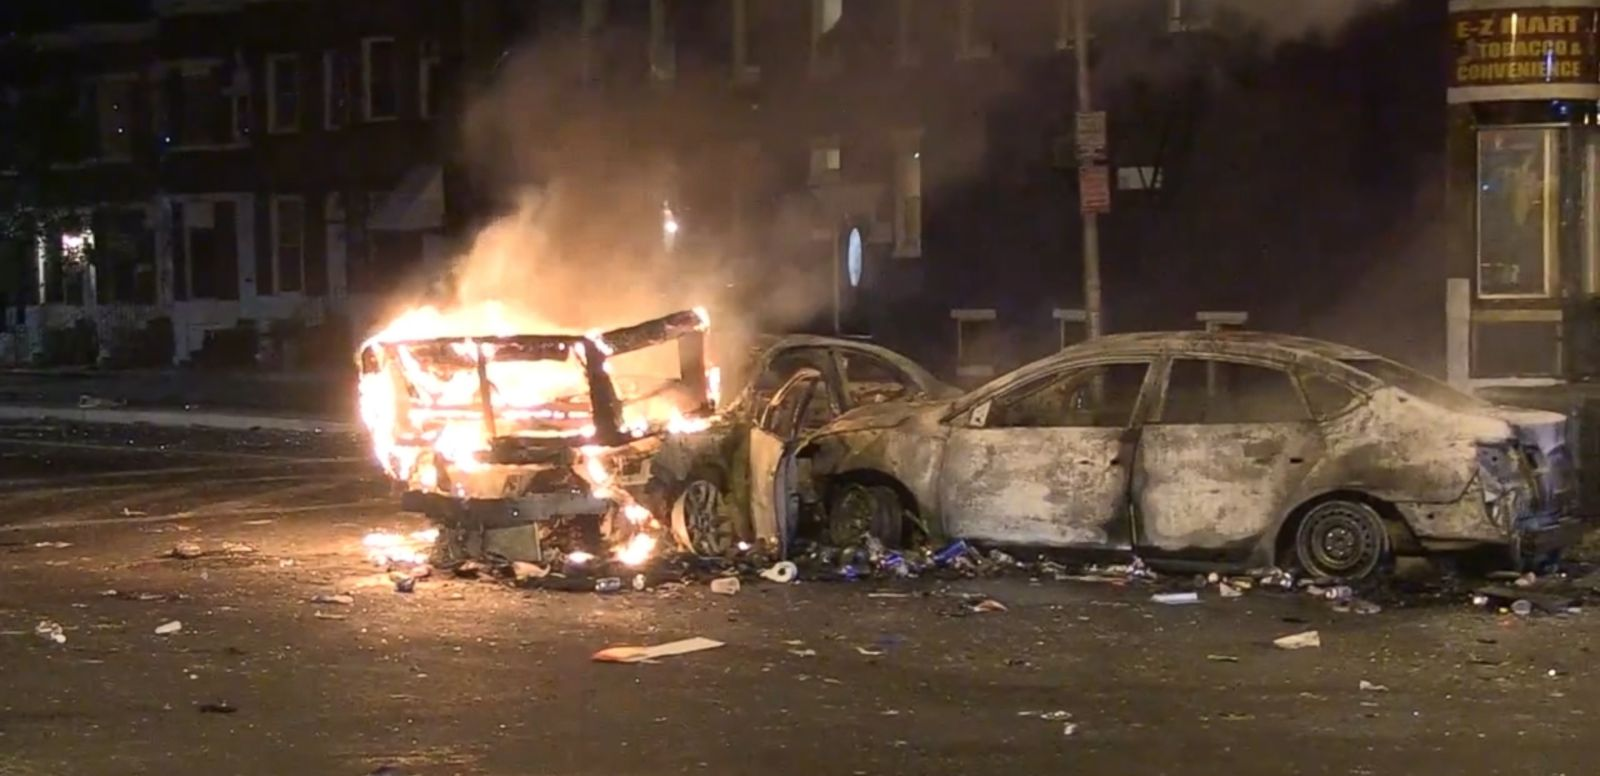 VIDEO: Fusion's Tim Pool reports from the streets of Baltimore as cars burn and rioters throw projectiles at police.